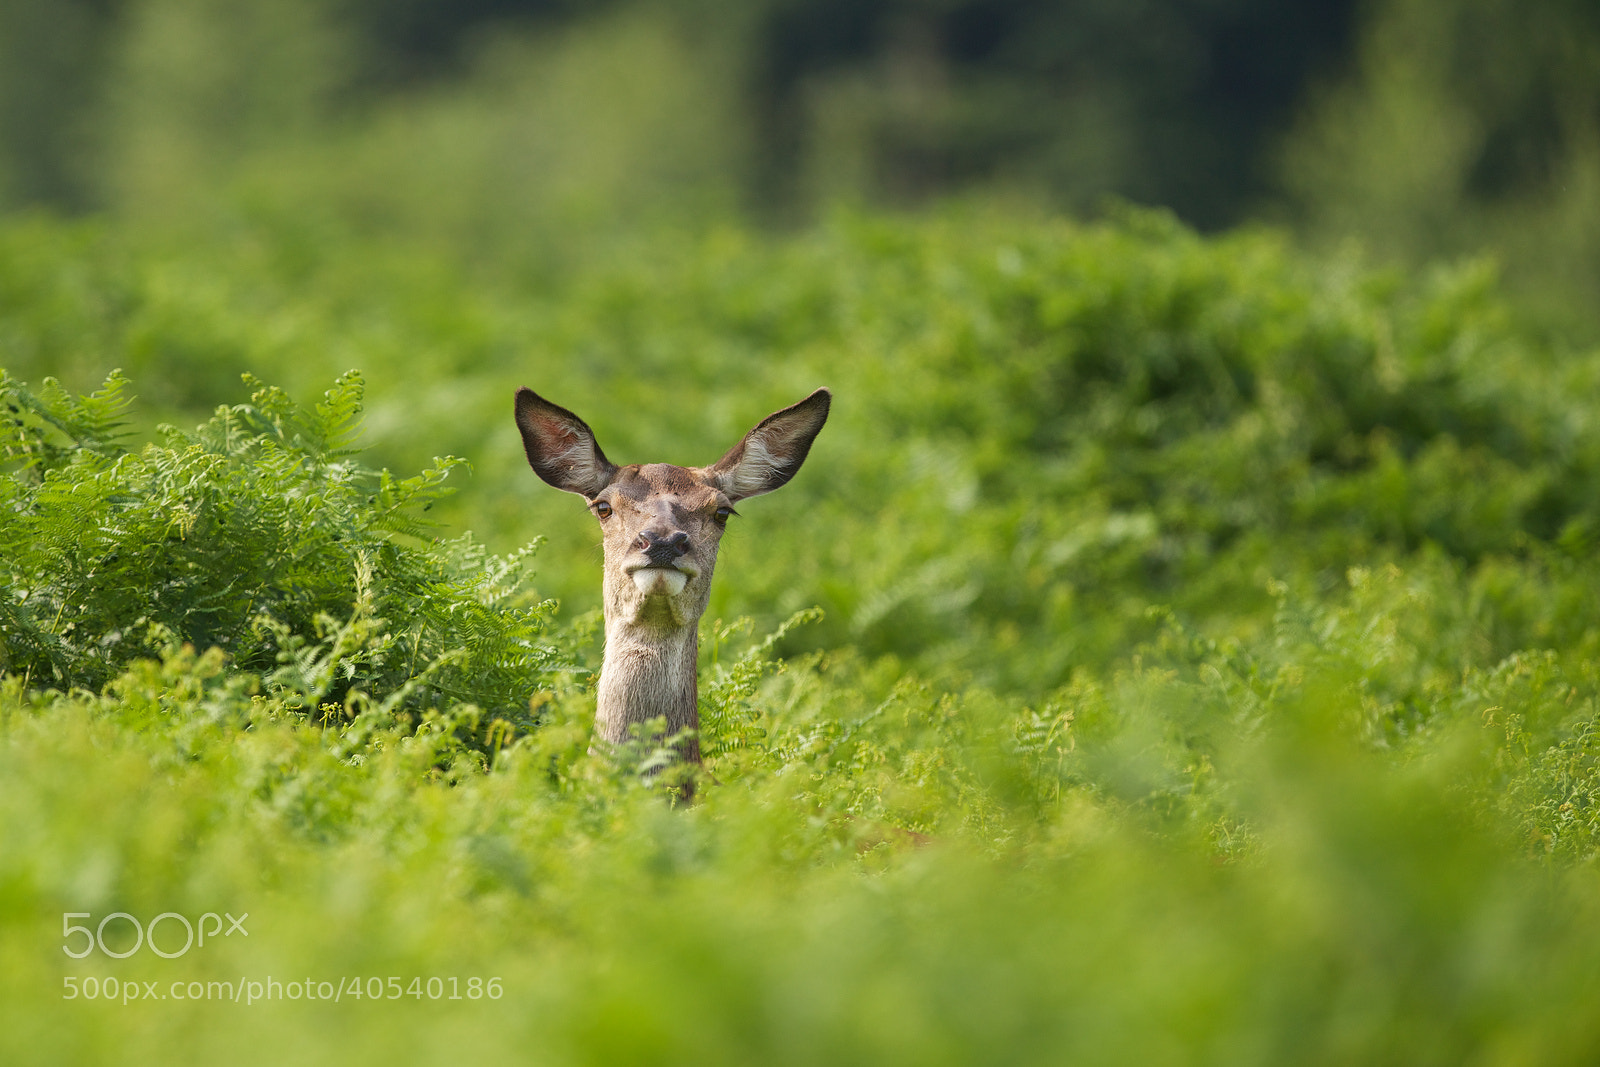 Photograph peek-a-boo! by Mark Bridger on 500px